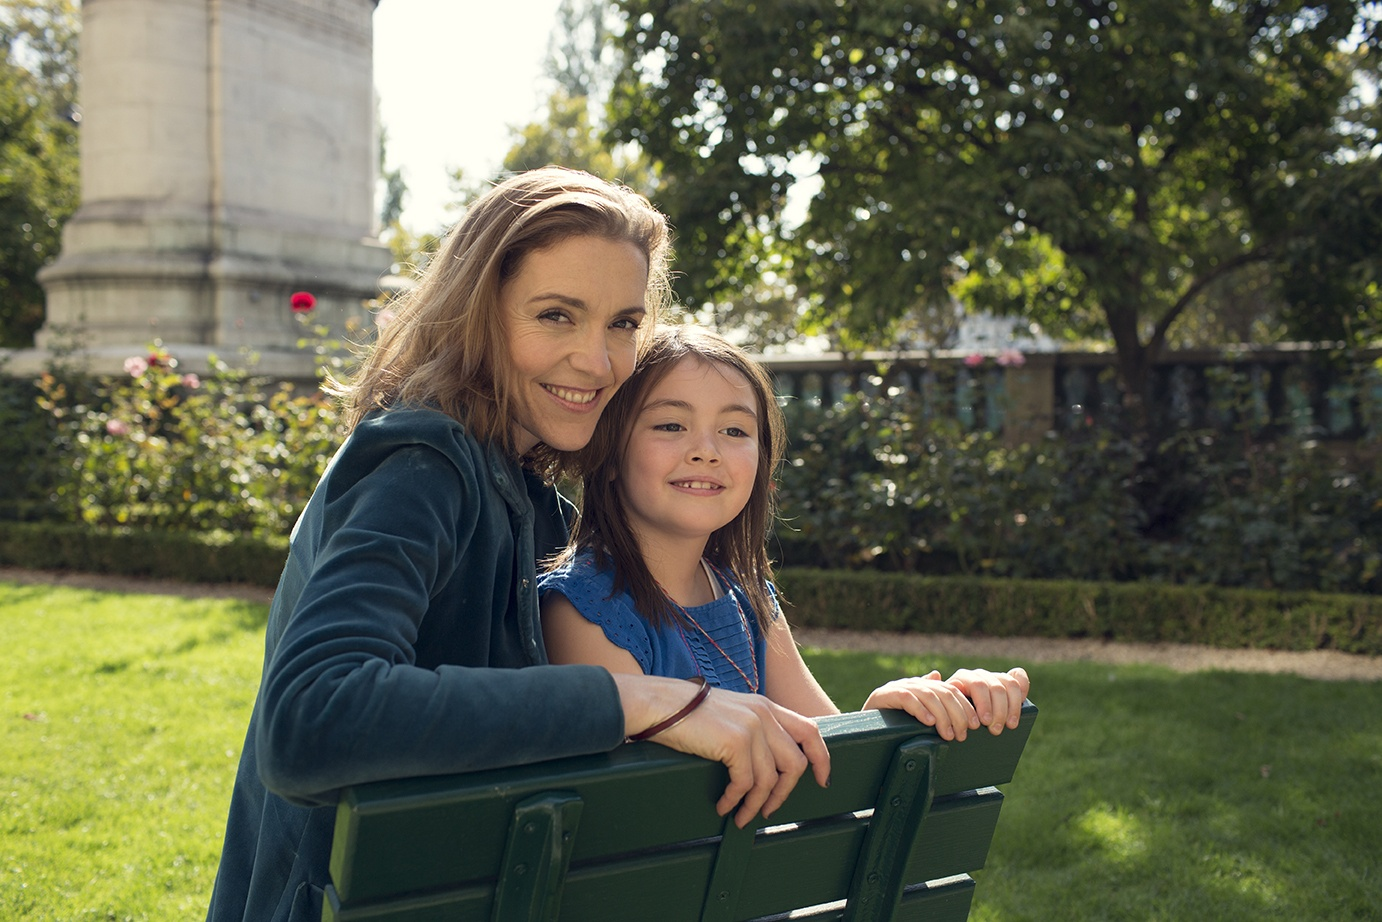 IMAGE: Susie Hollands and her daughter, Paloma, in a Paris park